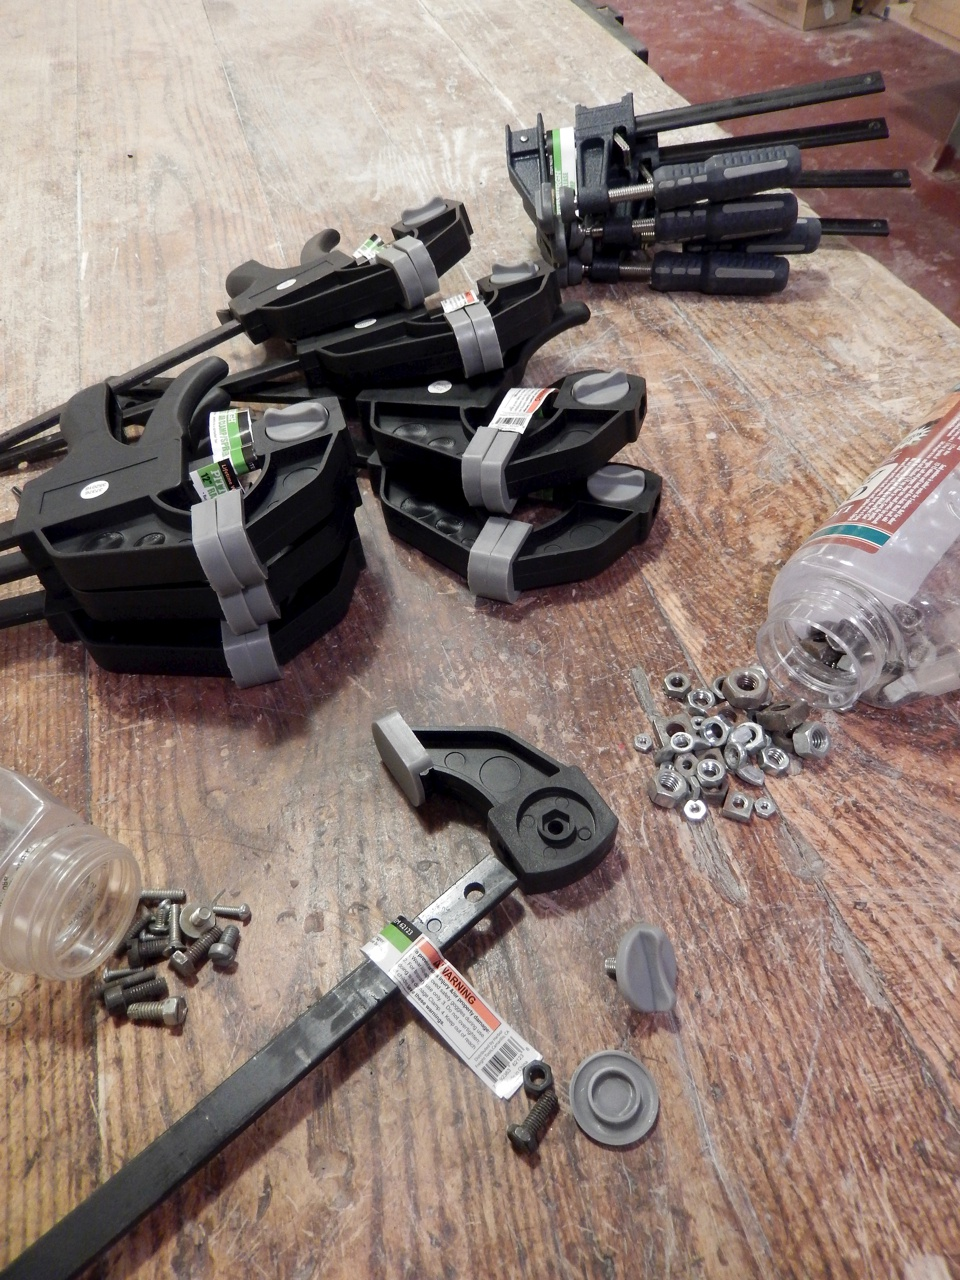 In Defense of Hardware Hoarding, and the Demise U.S. Clamp Makers